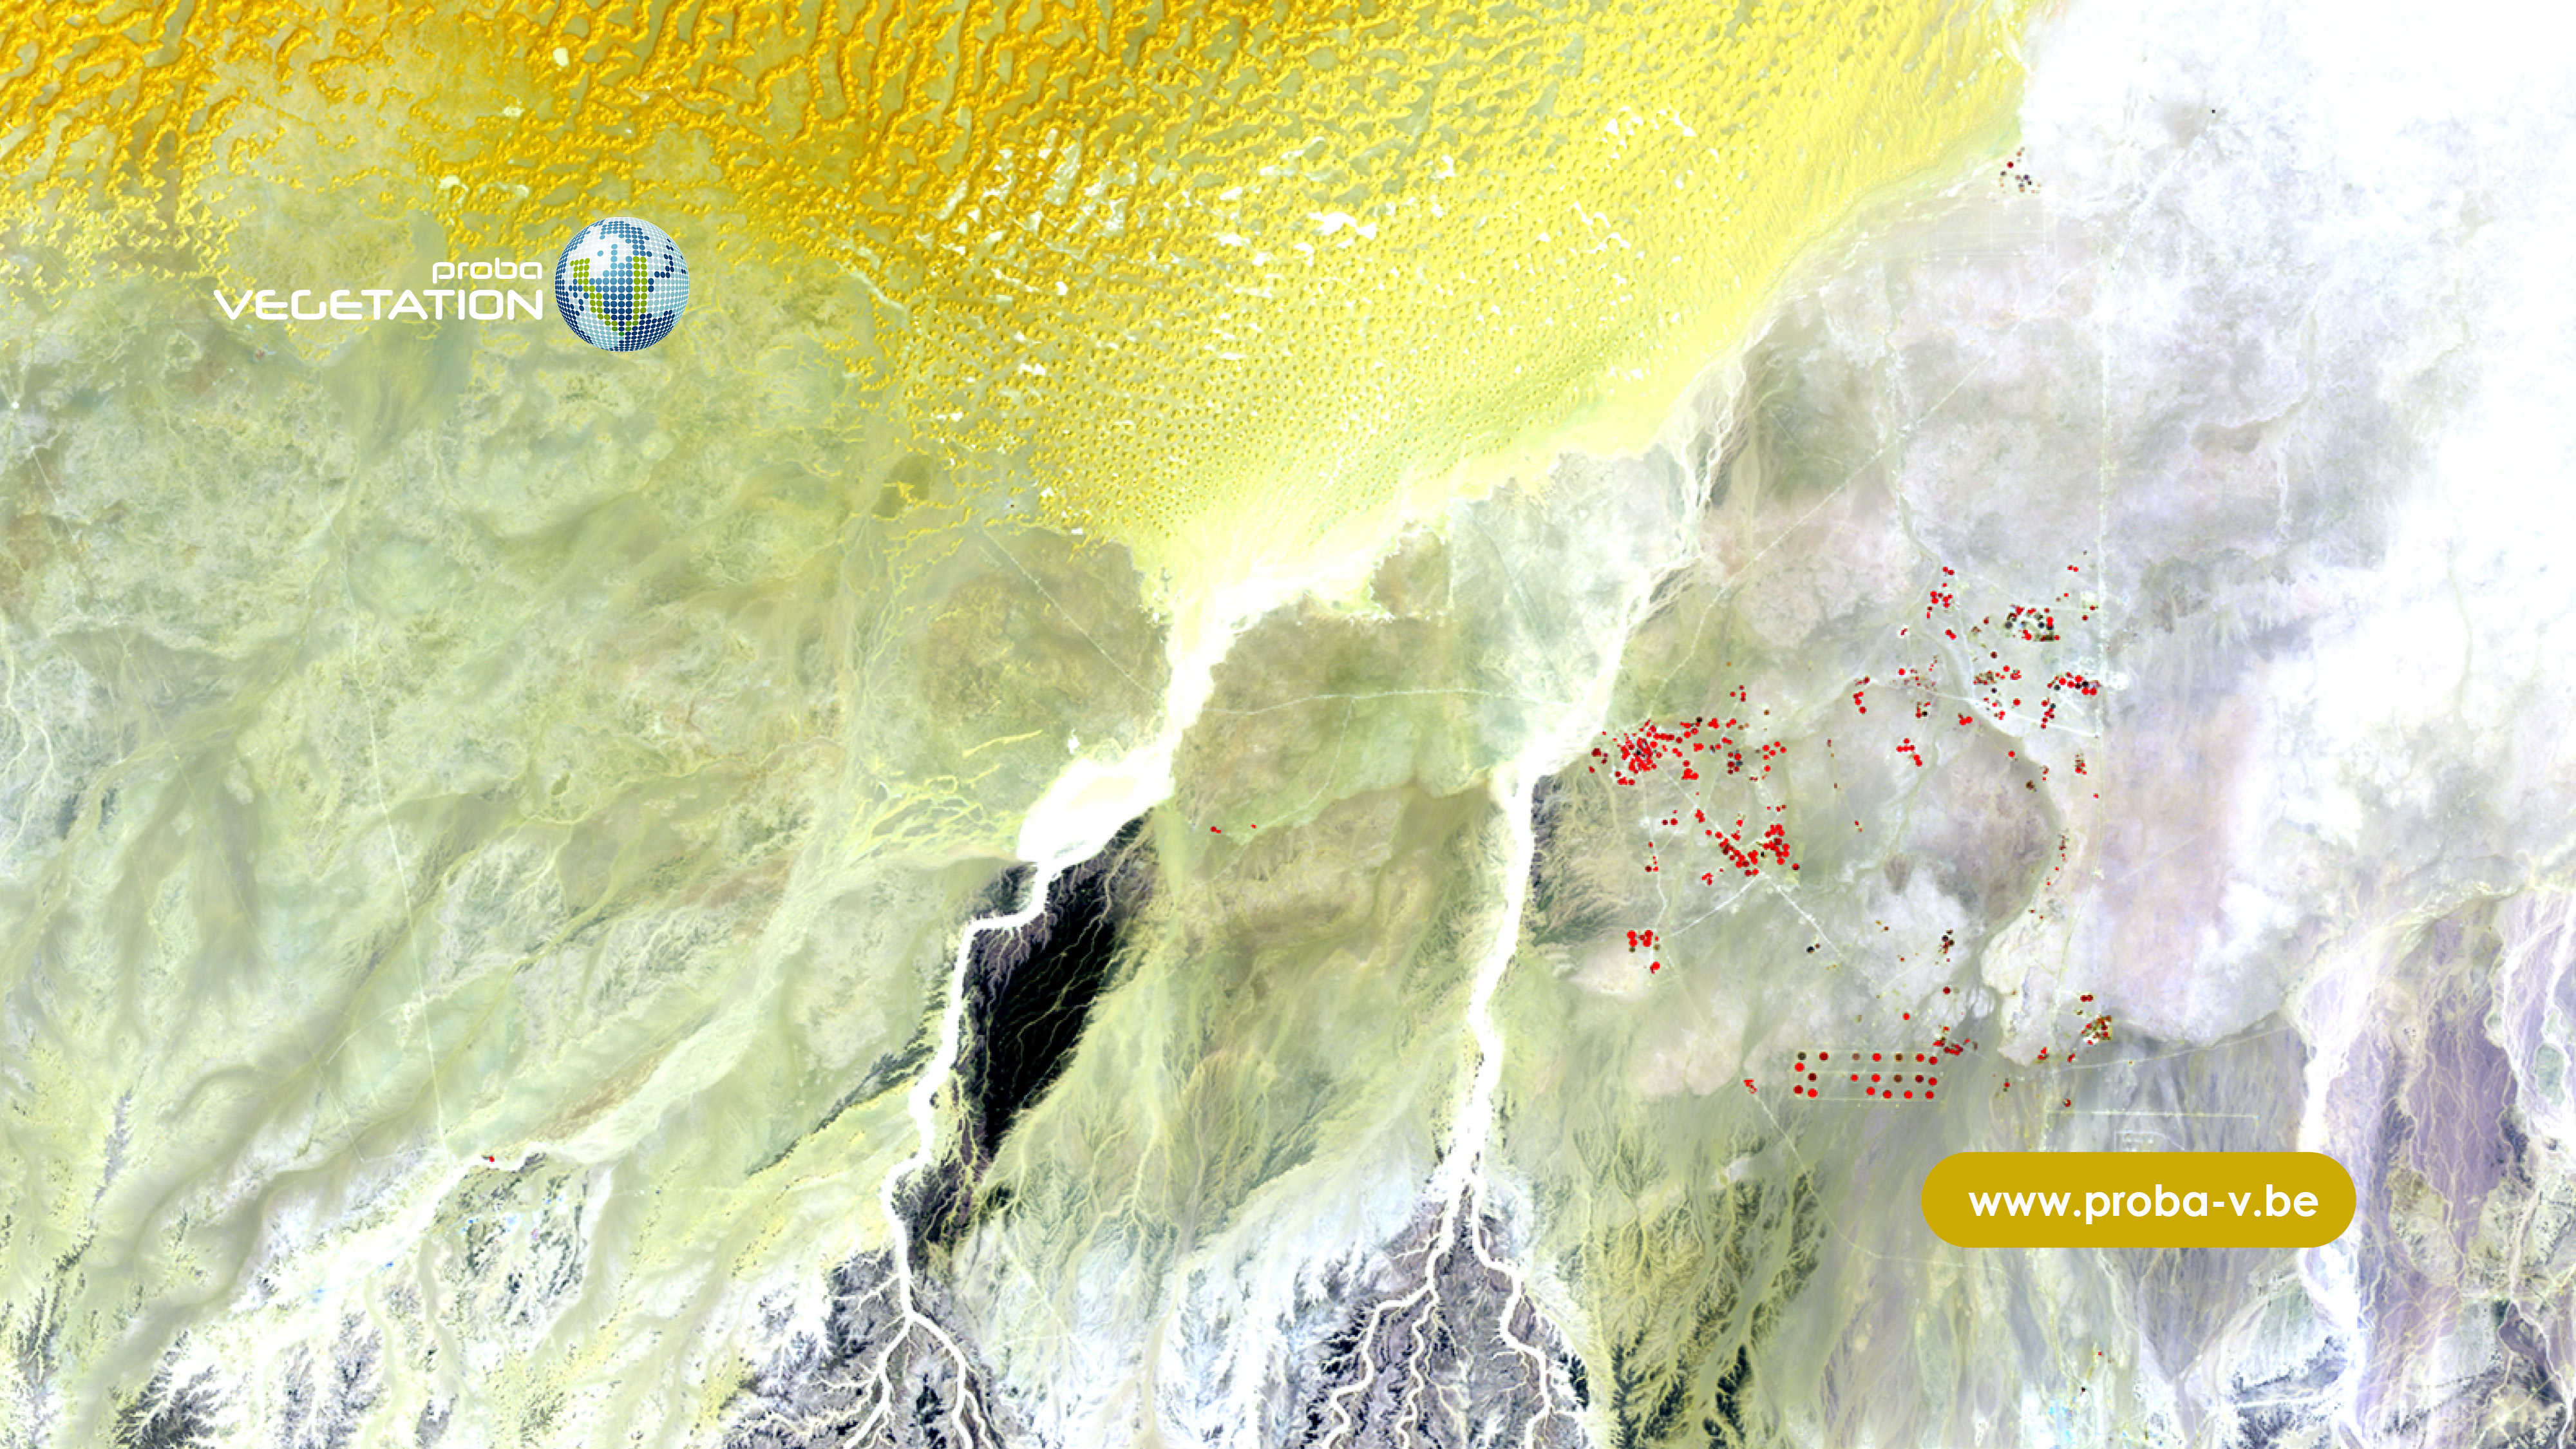 PROBA-V virtual background for all your web conferences - 100 m image of a wadi system in the Dhofar region of Oman